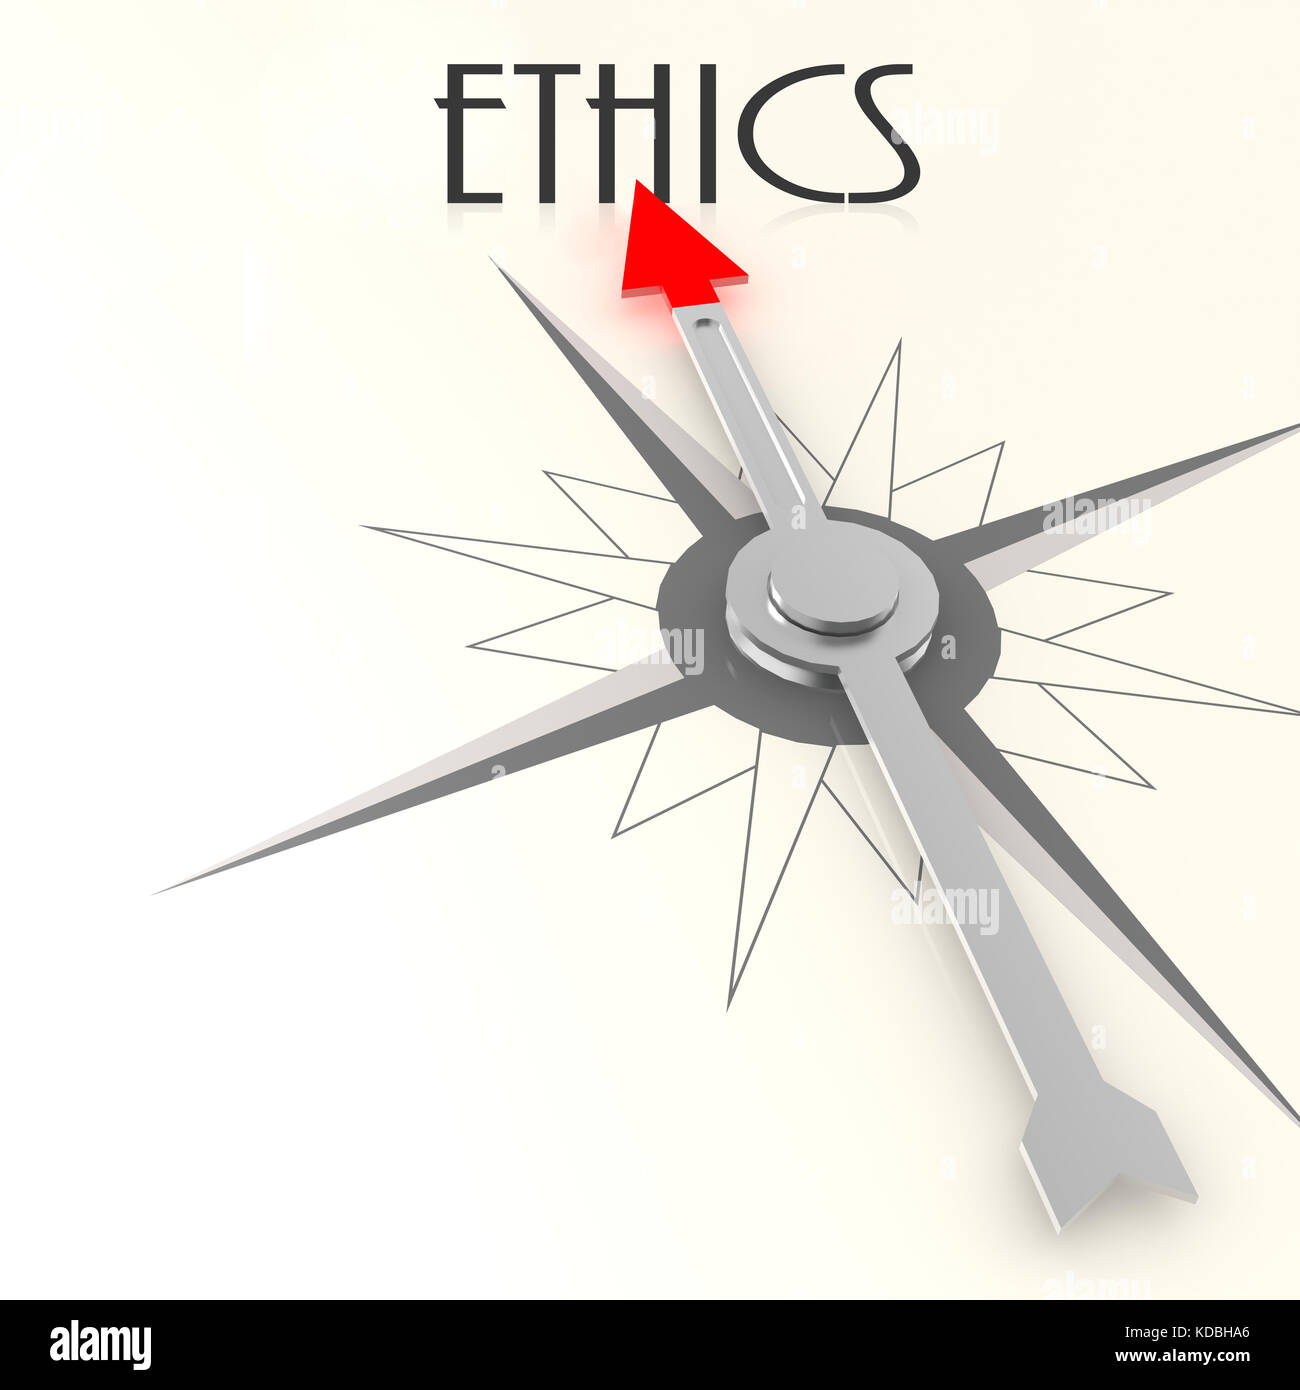 Compass with ethics word image with hi-res rendered artwork that could be used for any graphic design. - Stock Image